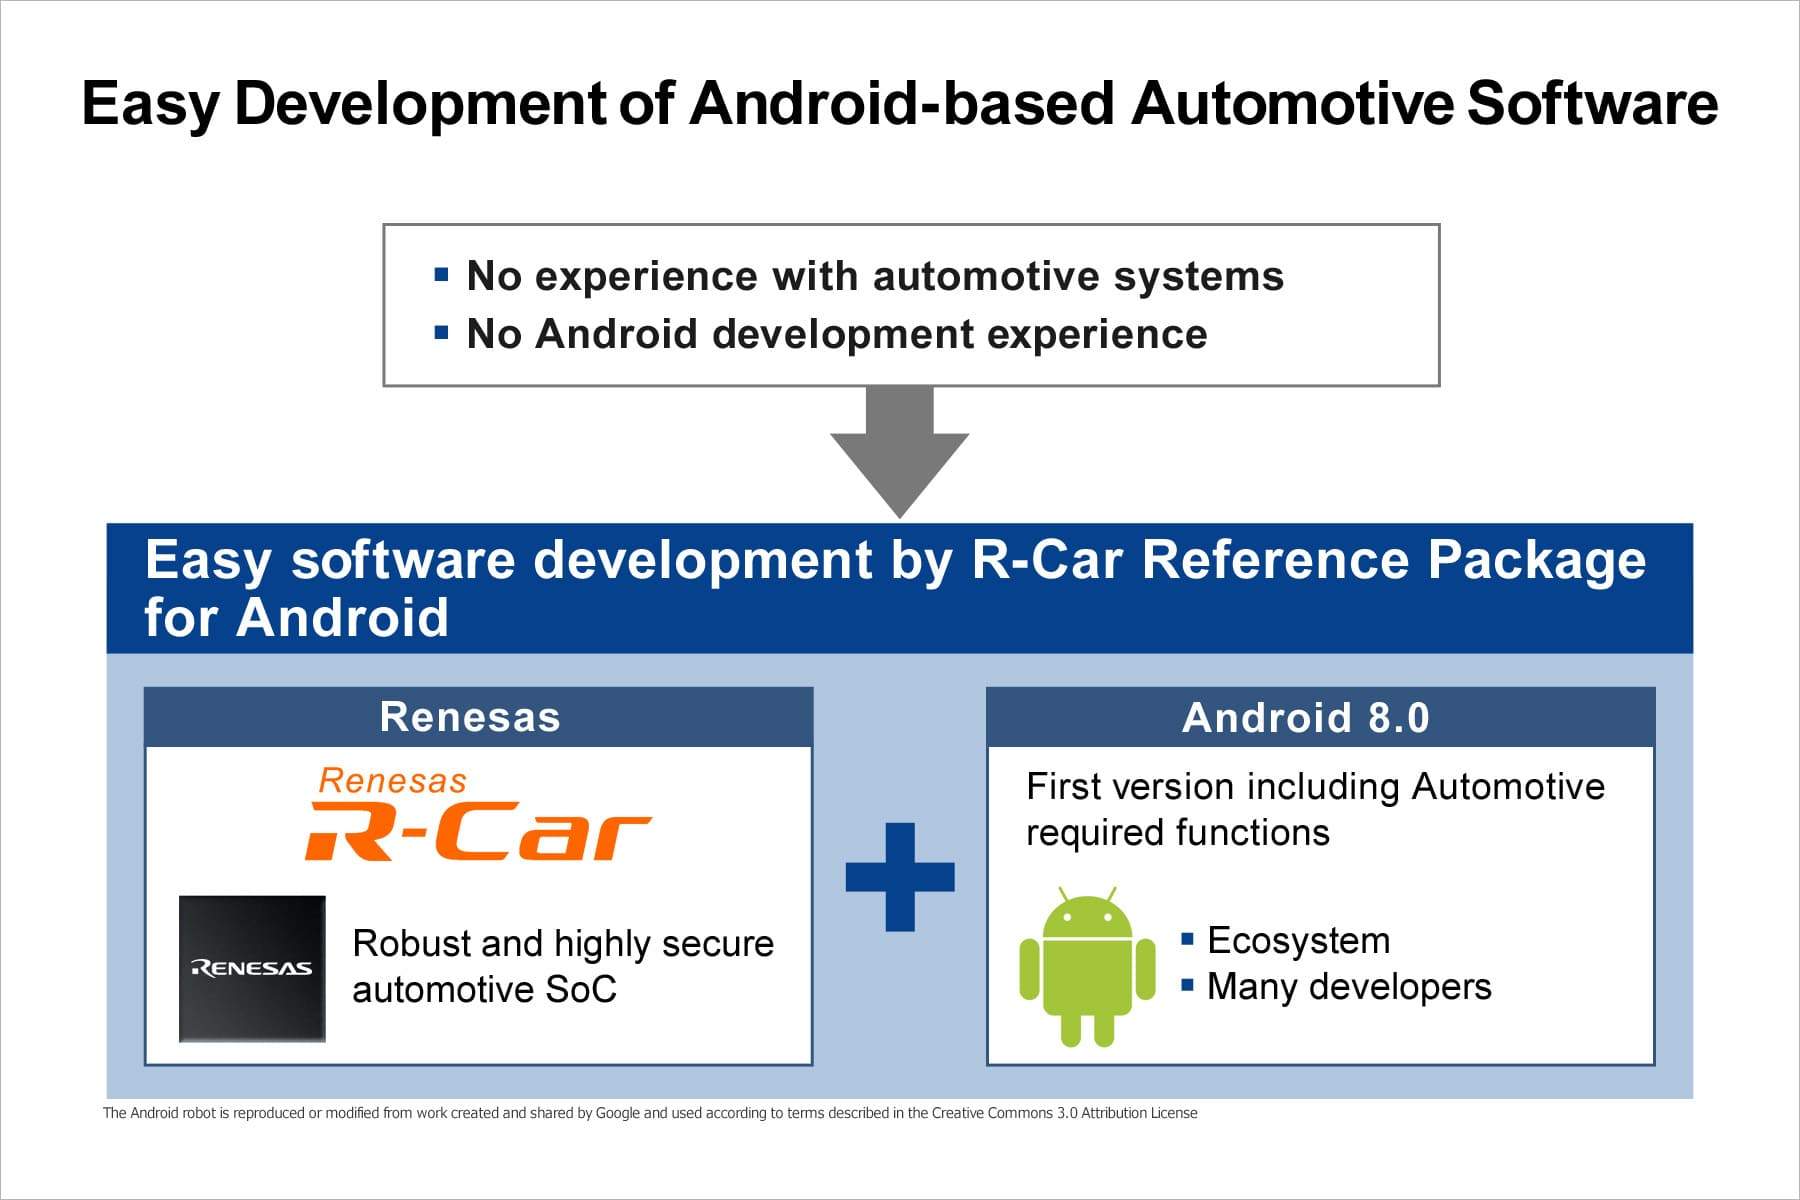 Renesas delivers R-Car reference package for Android